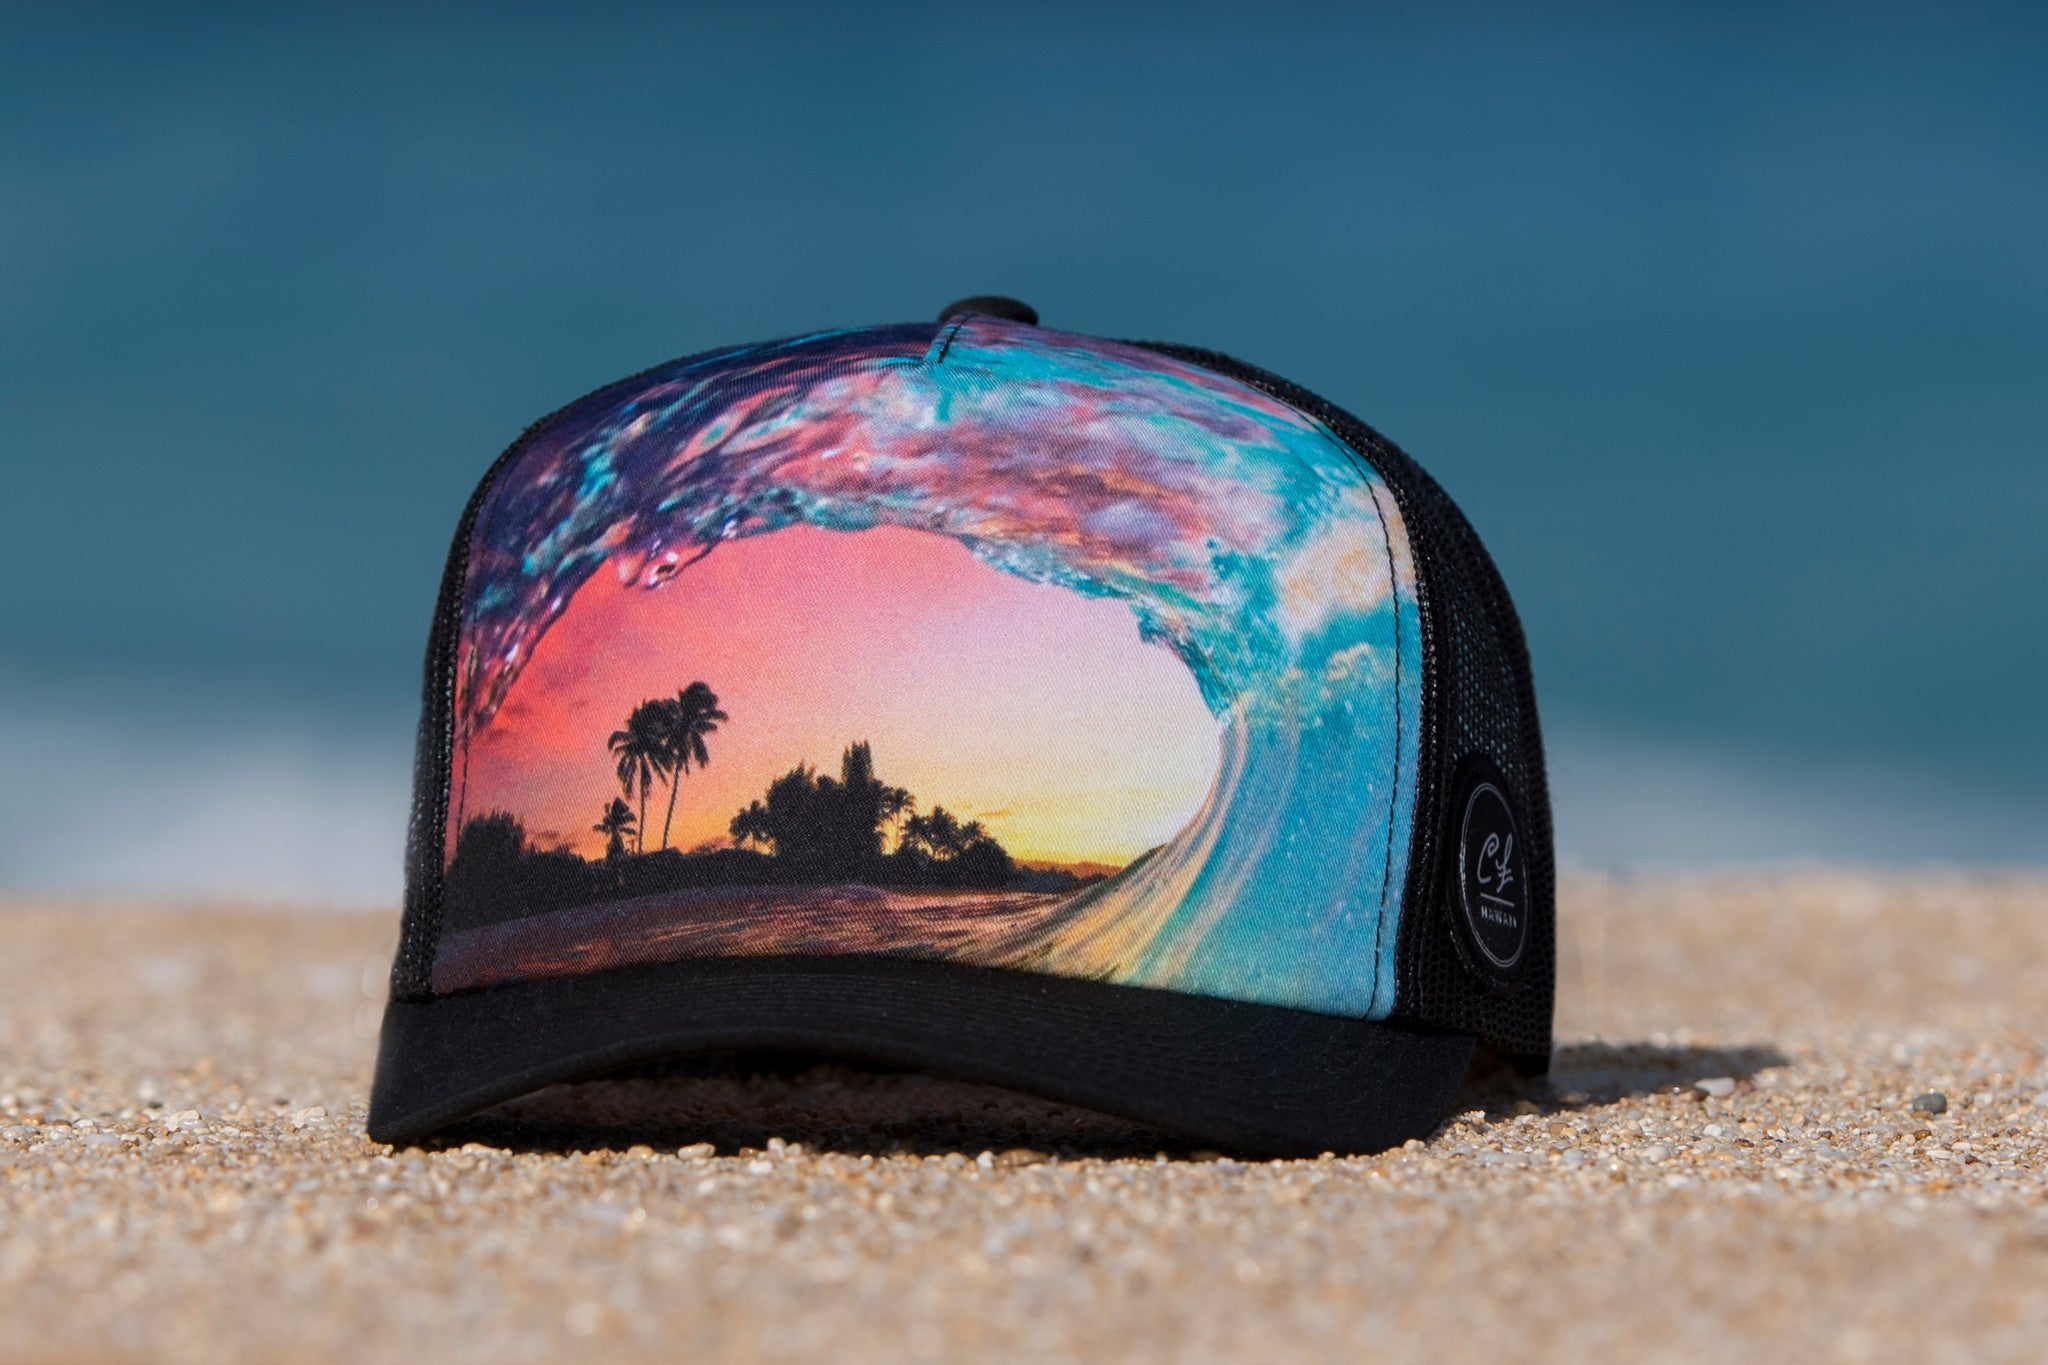 e1d1748494d4a9 Trucker Hat: Rainbow Shave Ice - Clark Little Photography